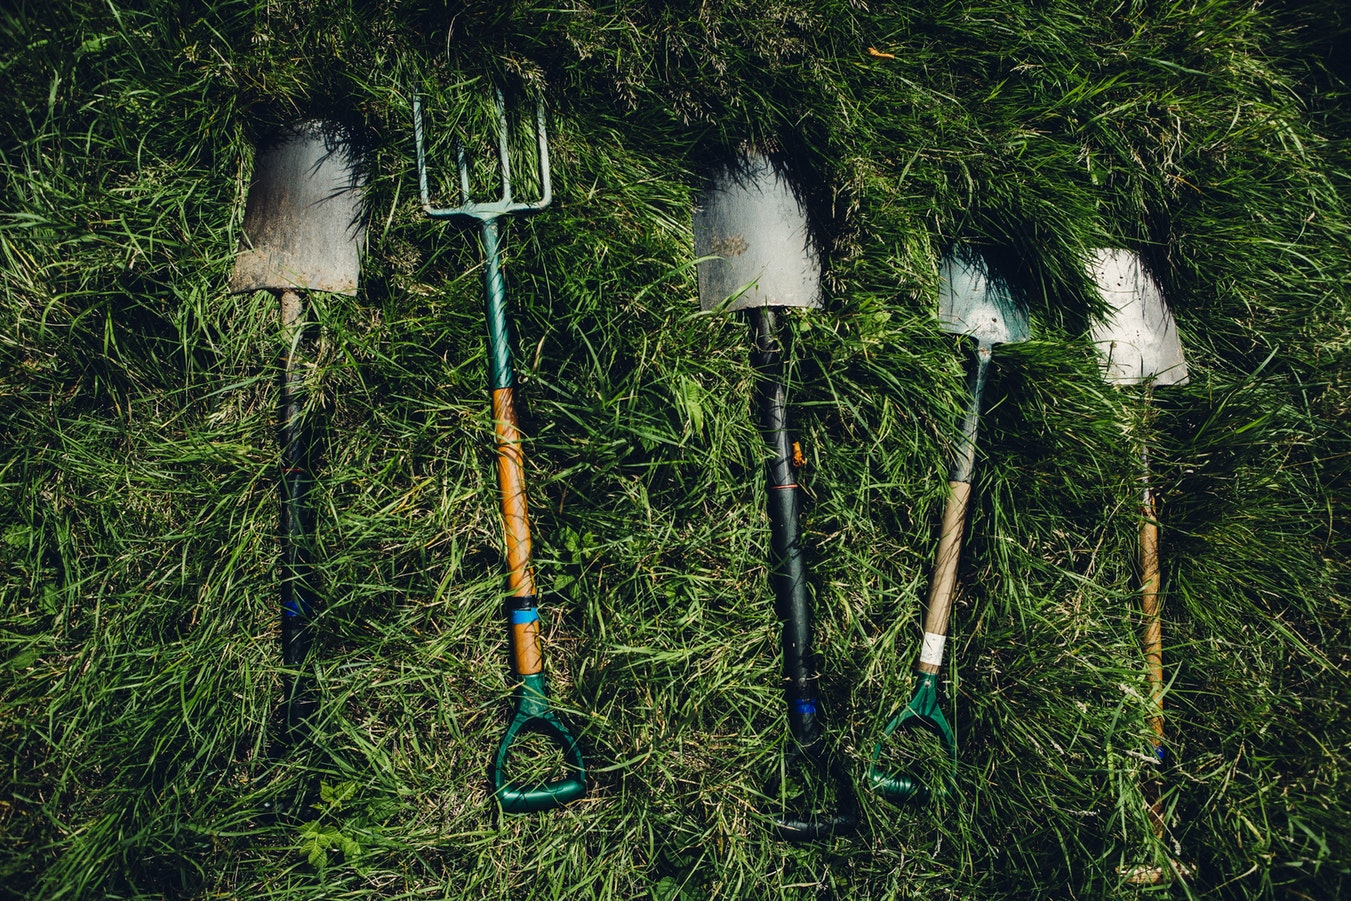 gardening tools lay down on grass